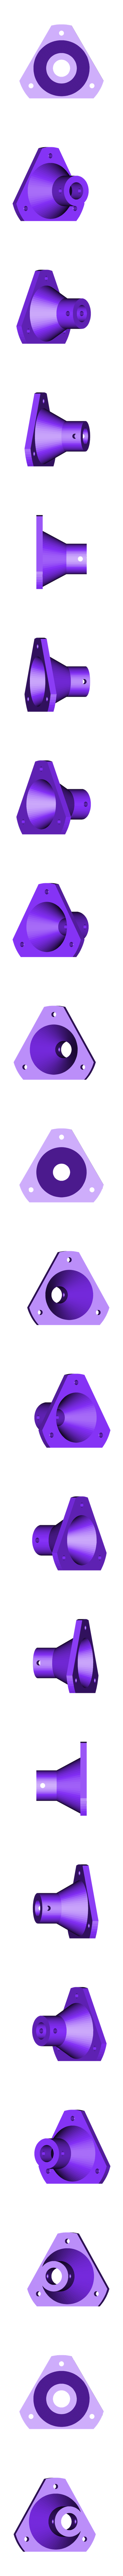 Gear08-Pinion-Flg01.stl Download free STL file Main Gear Box, Helicopter driven by 2-Engines • Object to 3D print, konchan77